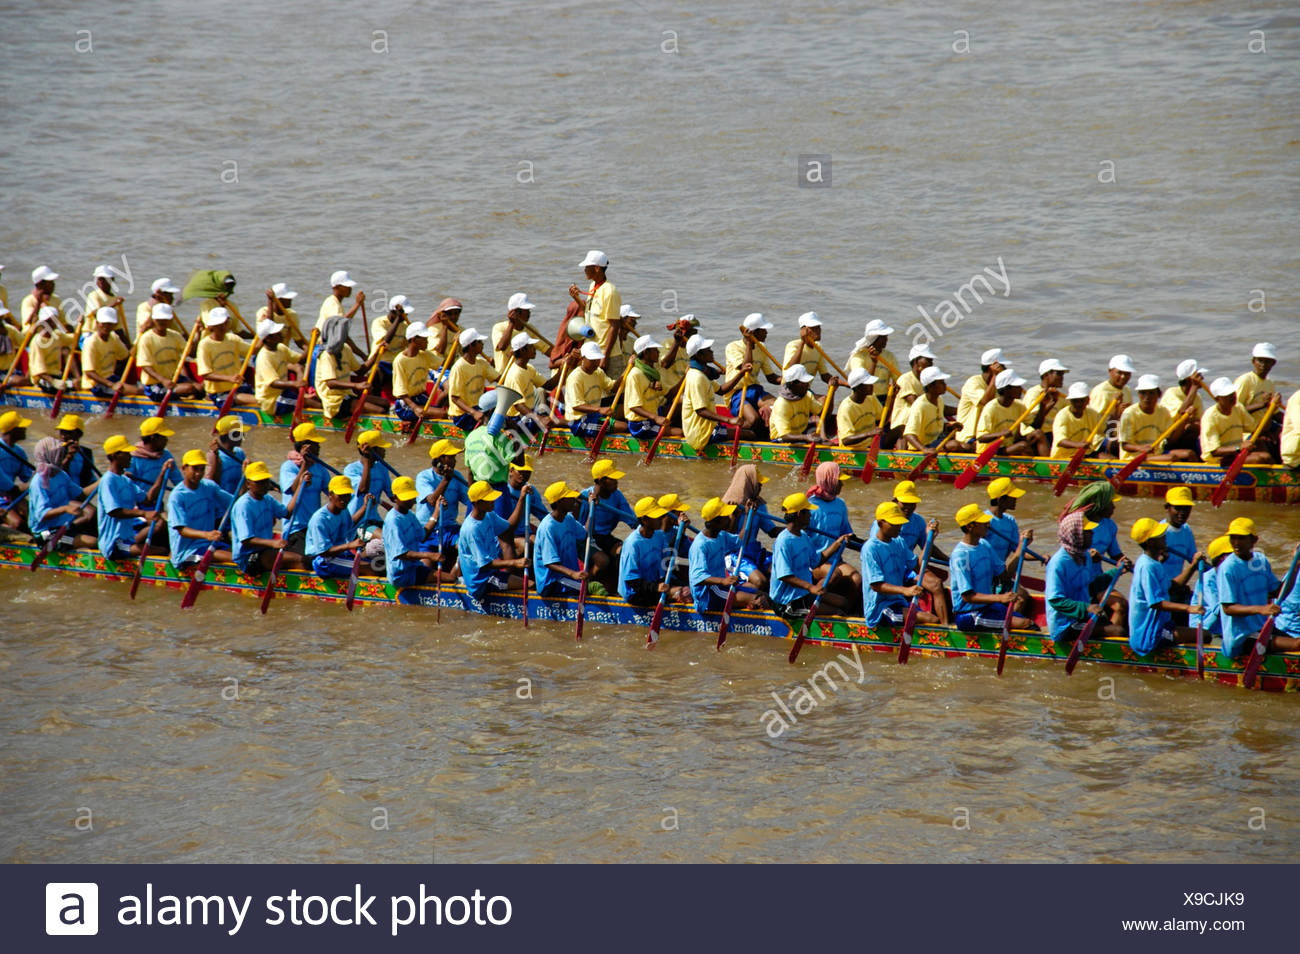 Big rowing boats, rowers, competition, water festival, Phnom Penh, Cambodia, Southeast Asia Stock Photo